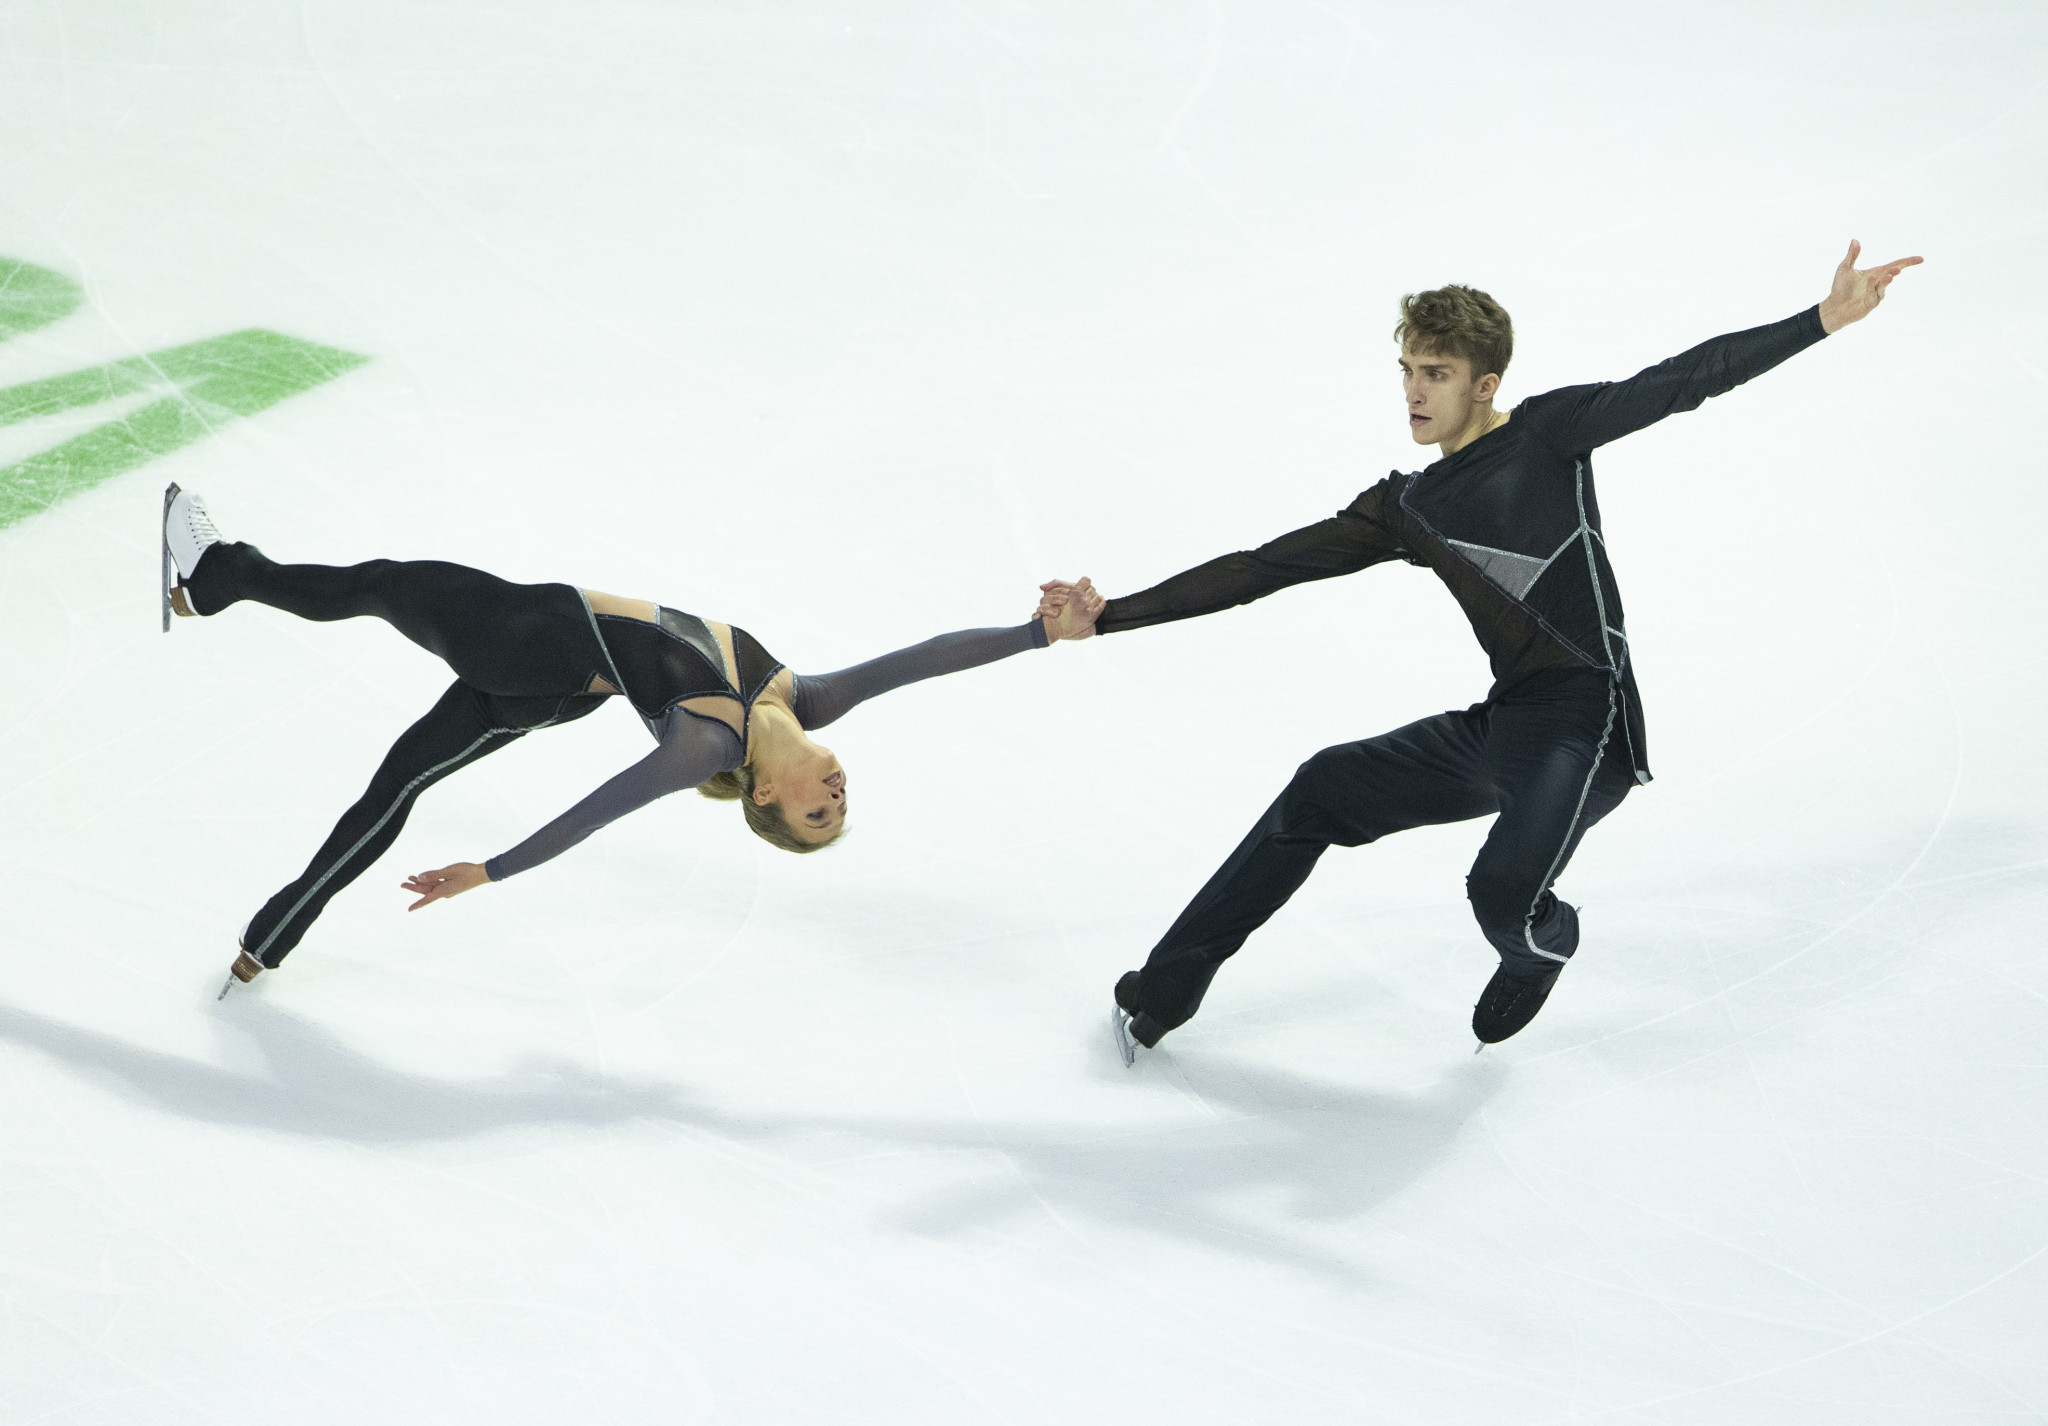 Alisa Efimova and Alexander Korovin of Russia struck gold in the pairs competition at Krasnoyarsk 2019 ©Getty Images